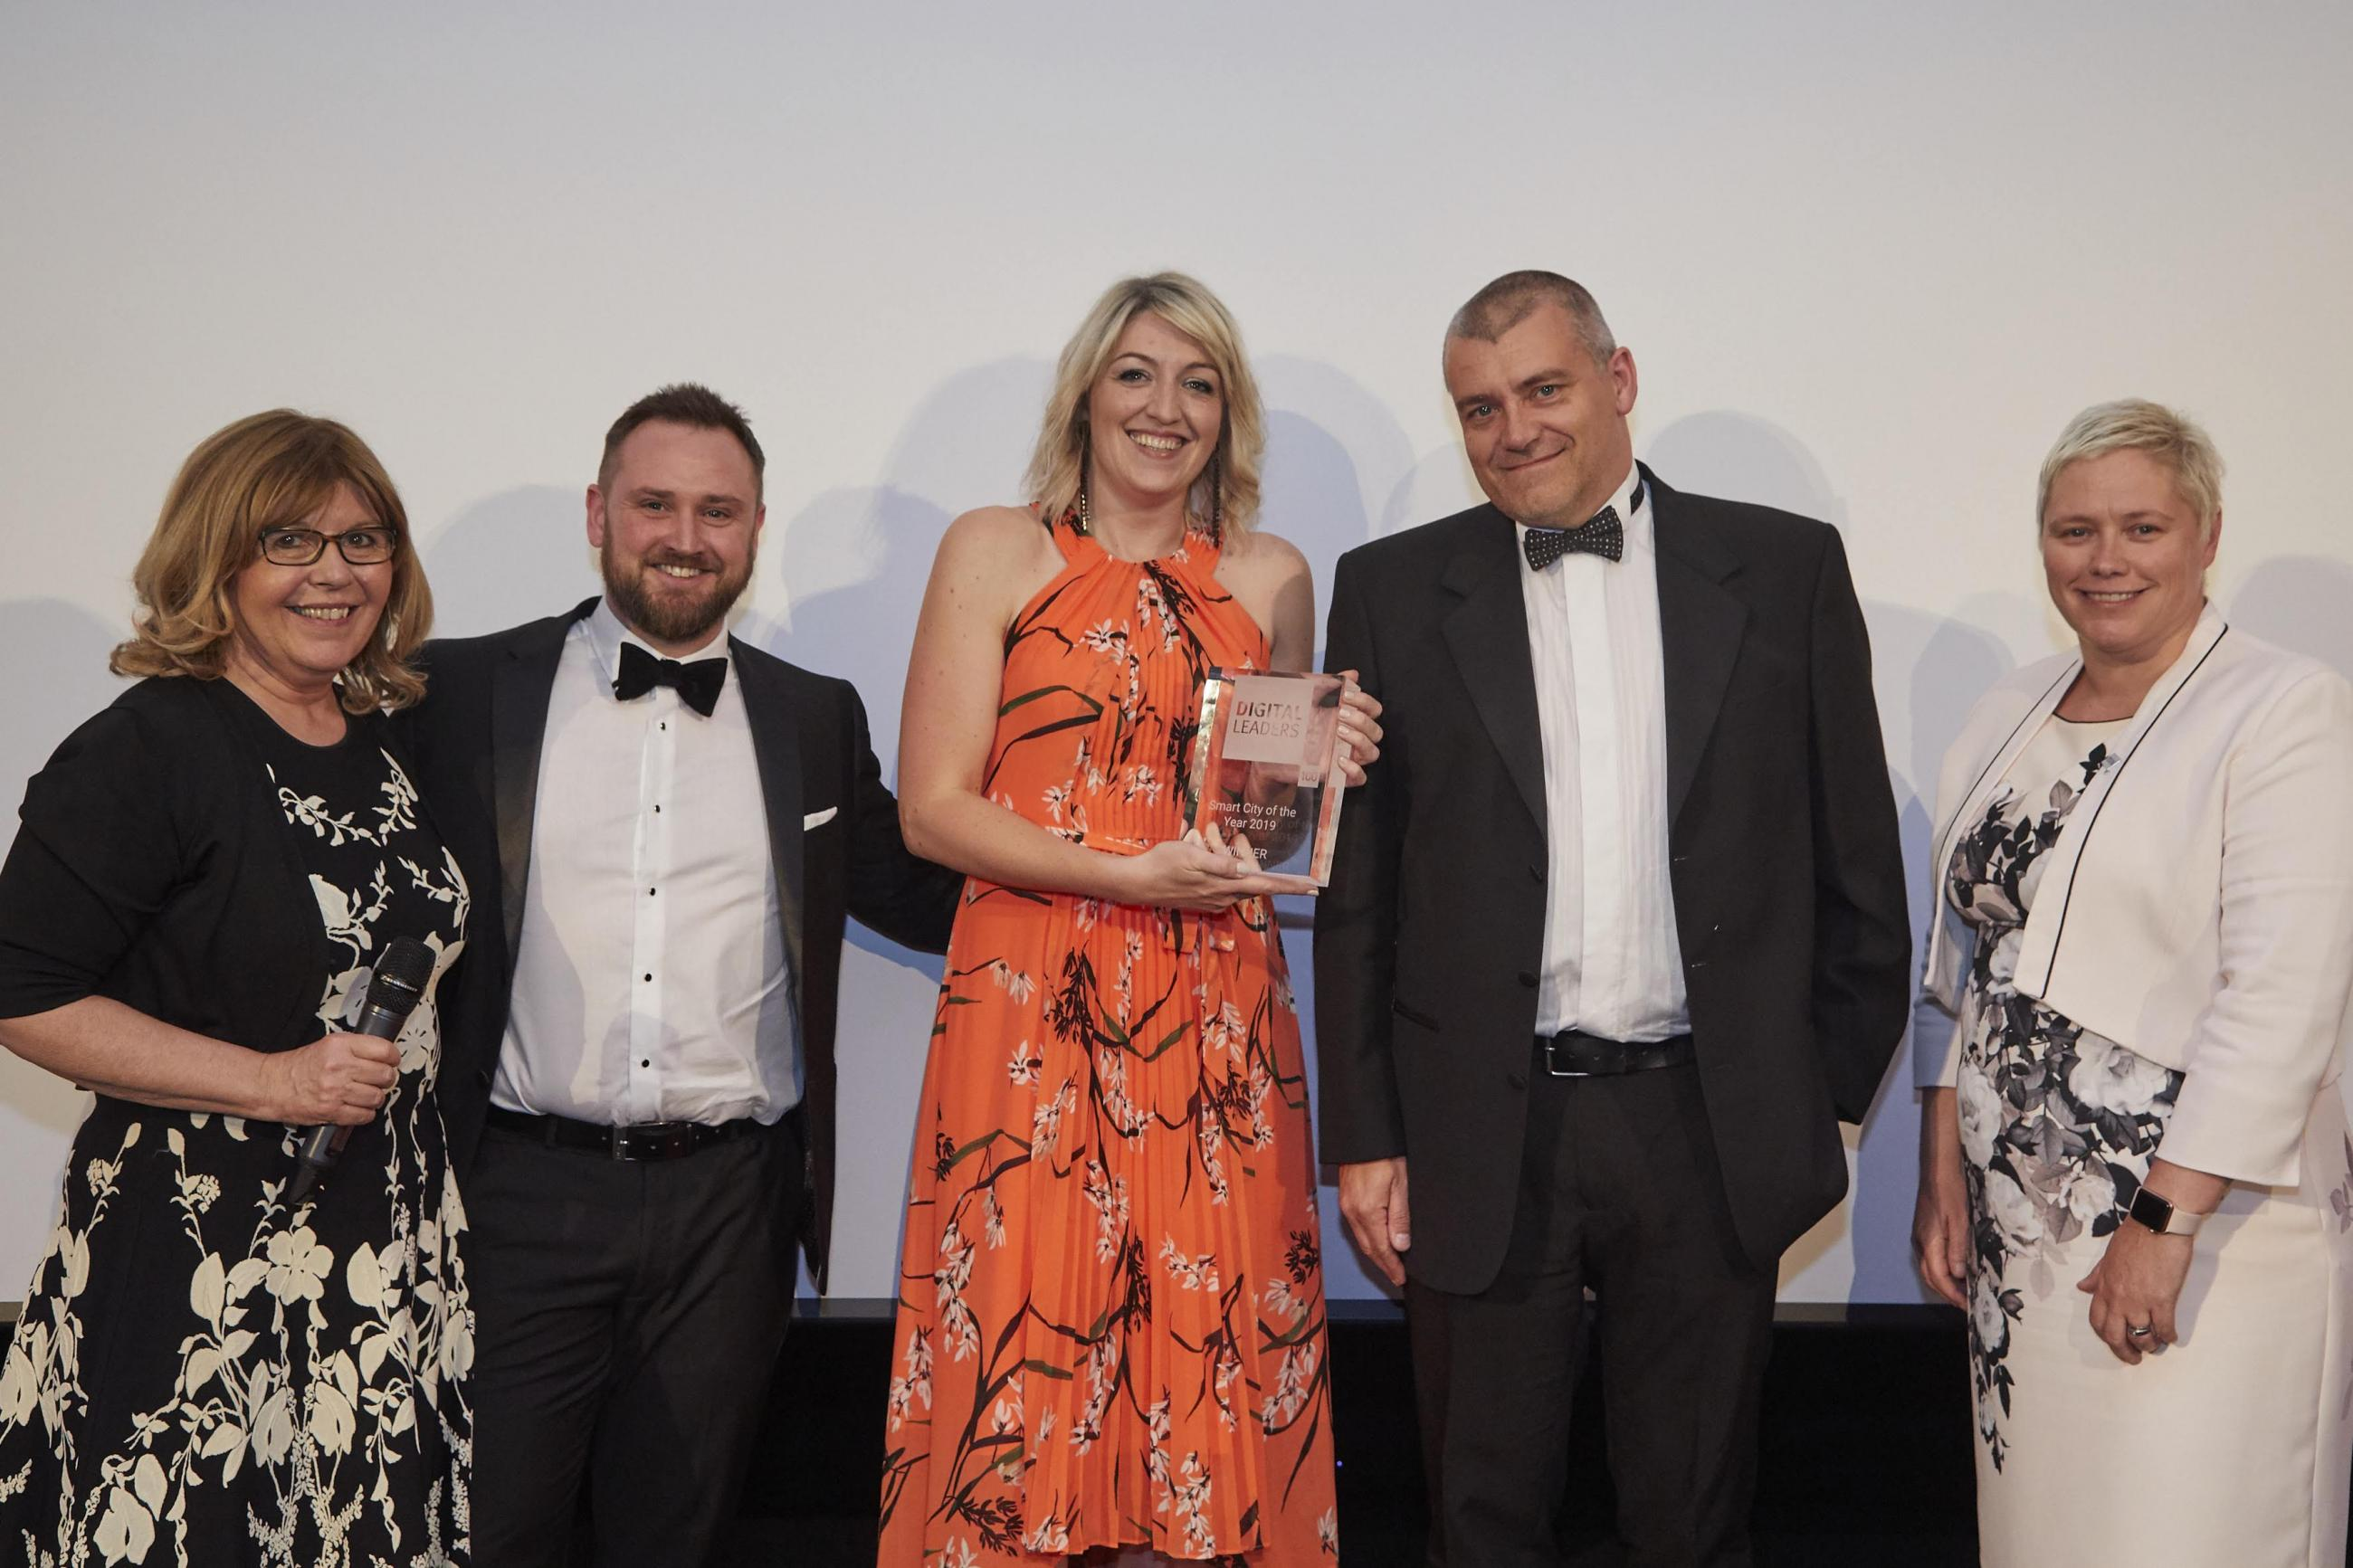 Newcastle won Smart City of the Year at the Digital Leaders Awards.